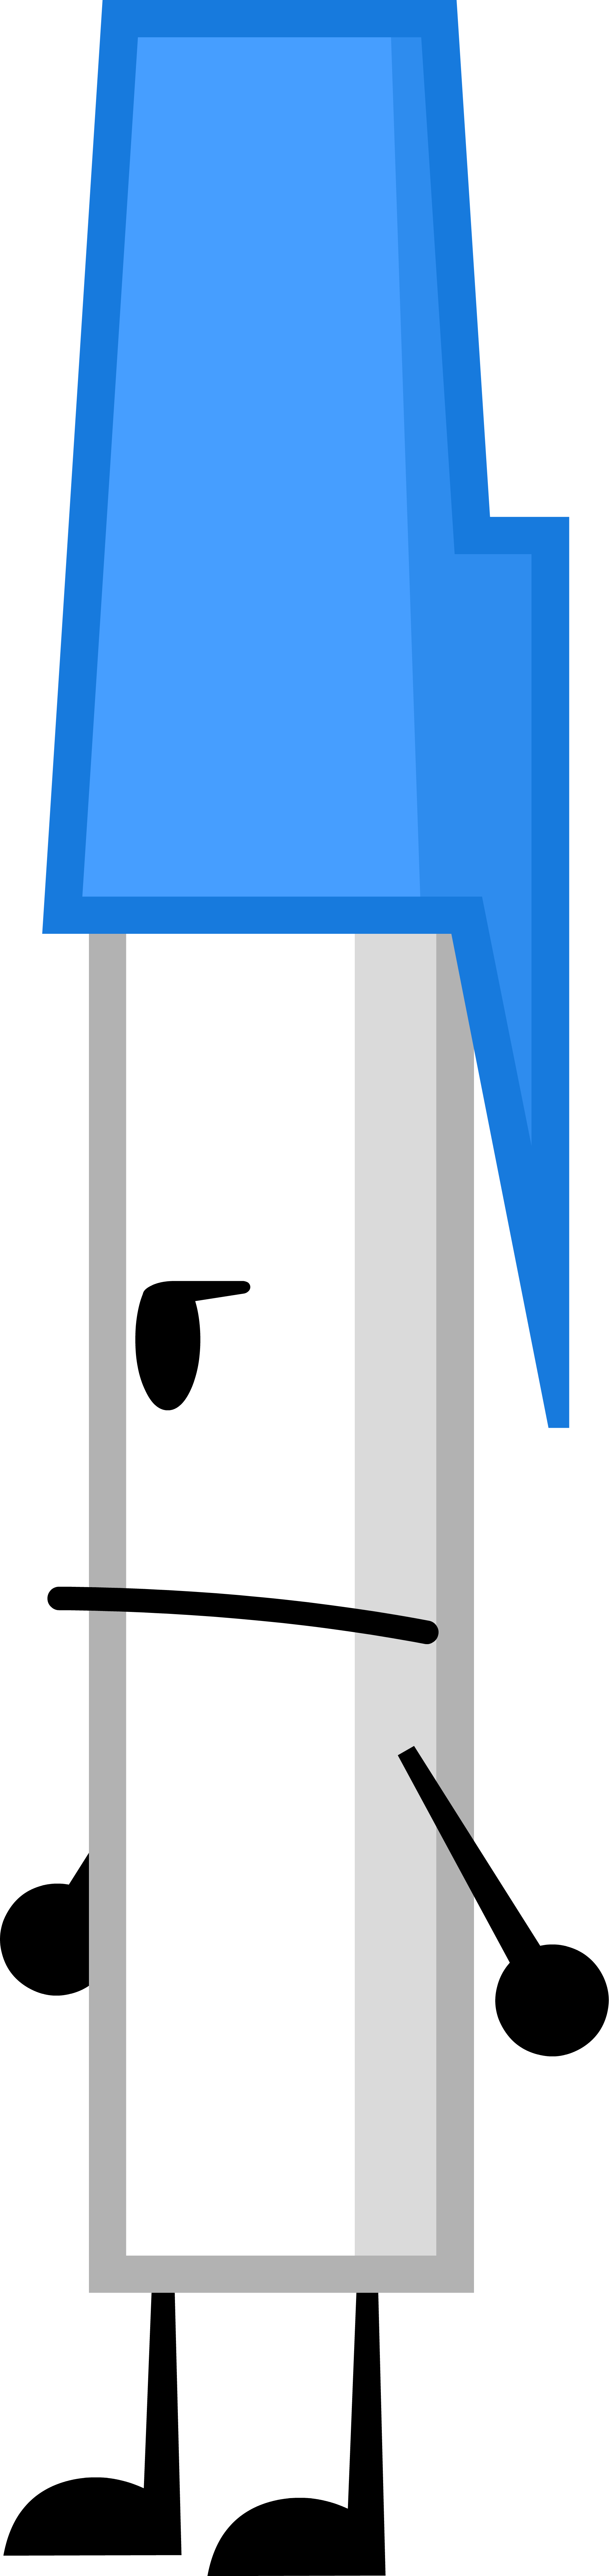 File:Pen 5.png